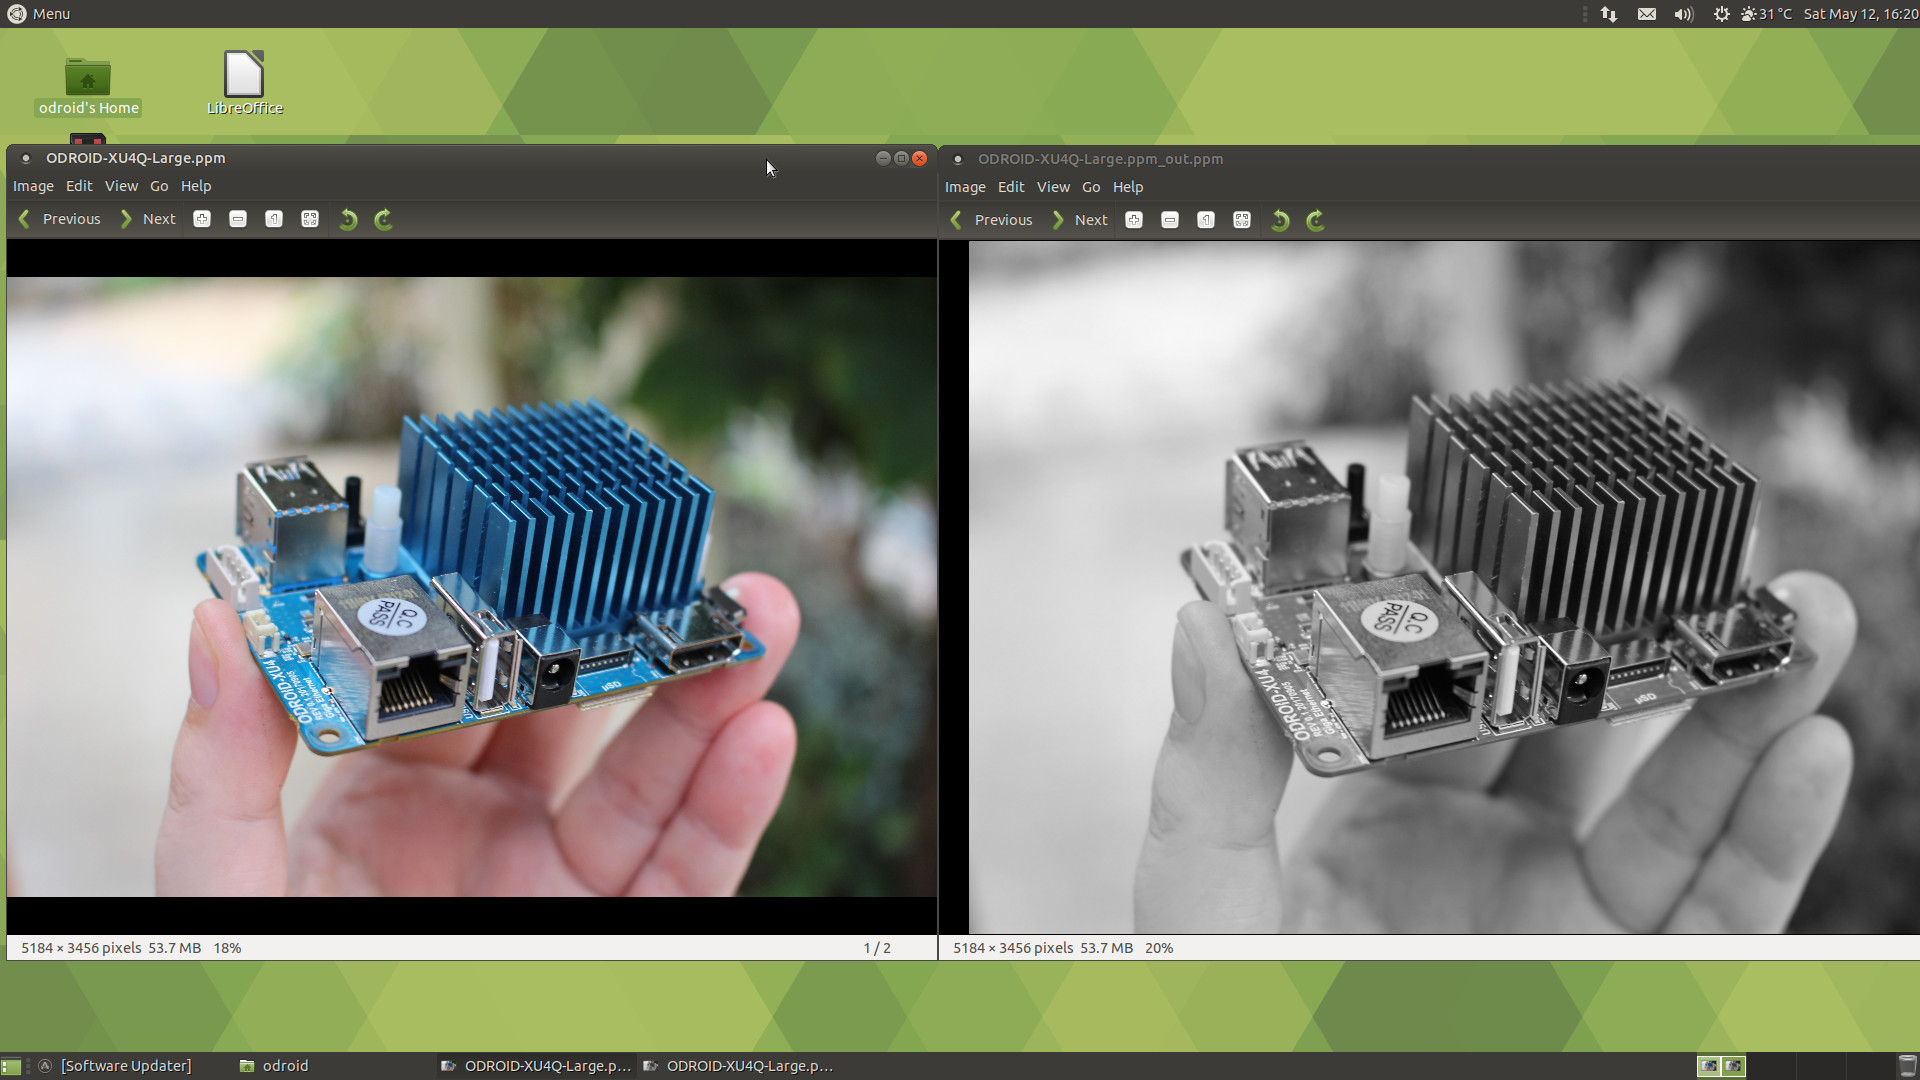 How to Get Started with OpenCL on ODROID-XU4 Board (with Arm